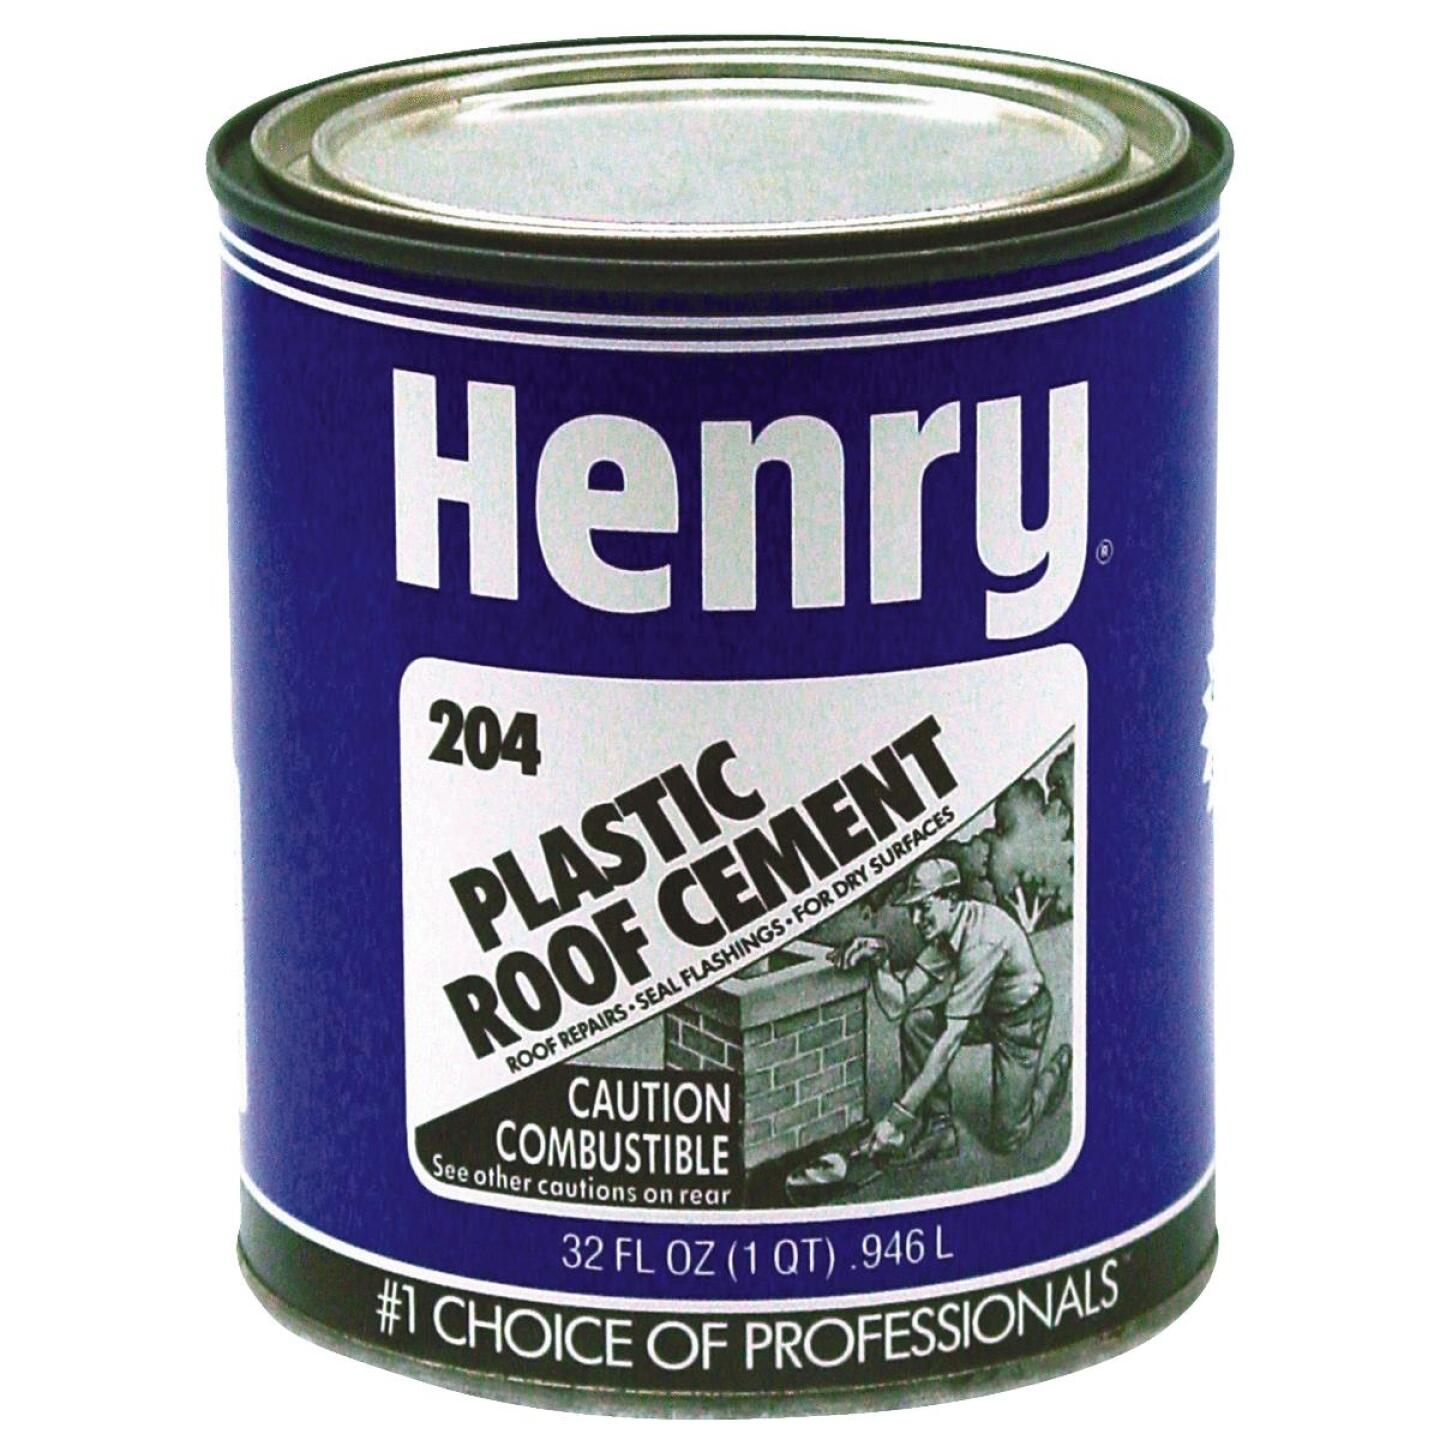 Henry 30 Oz. Plastic Roof Cement and Patching Sealant Image 1